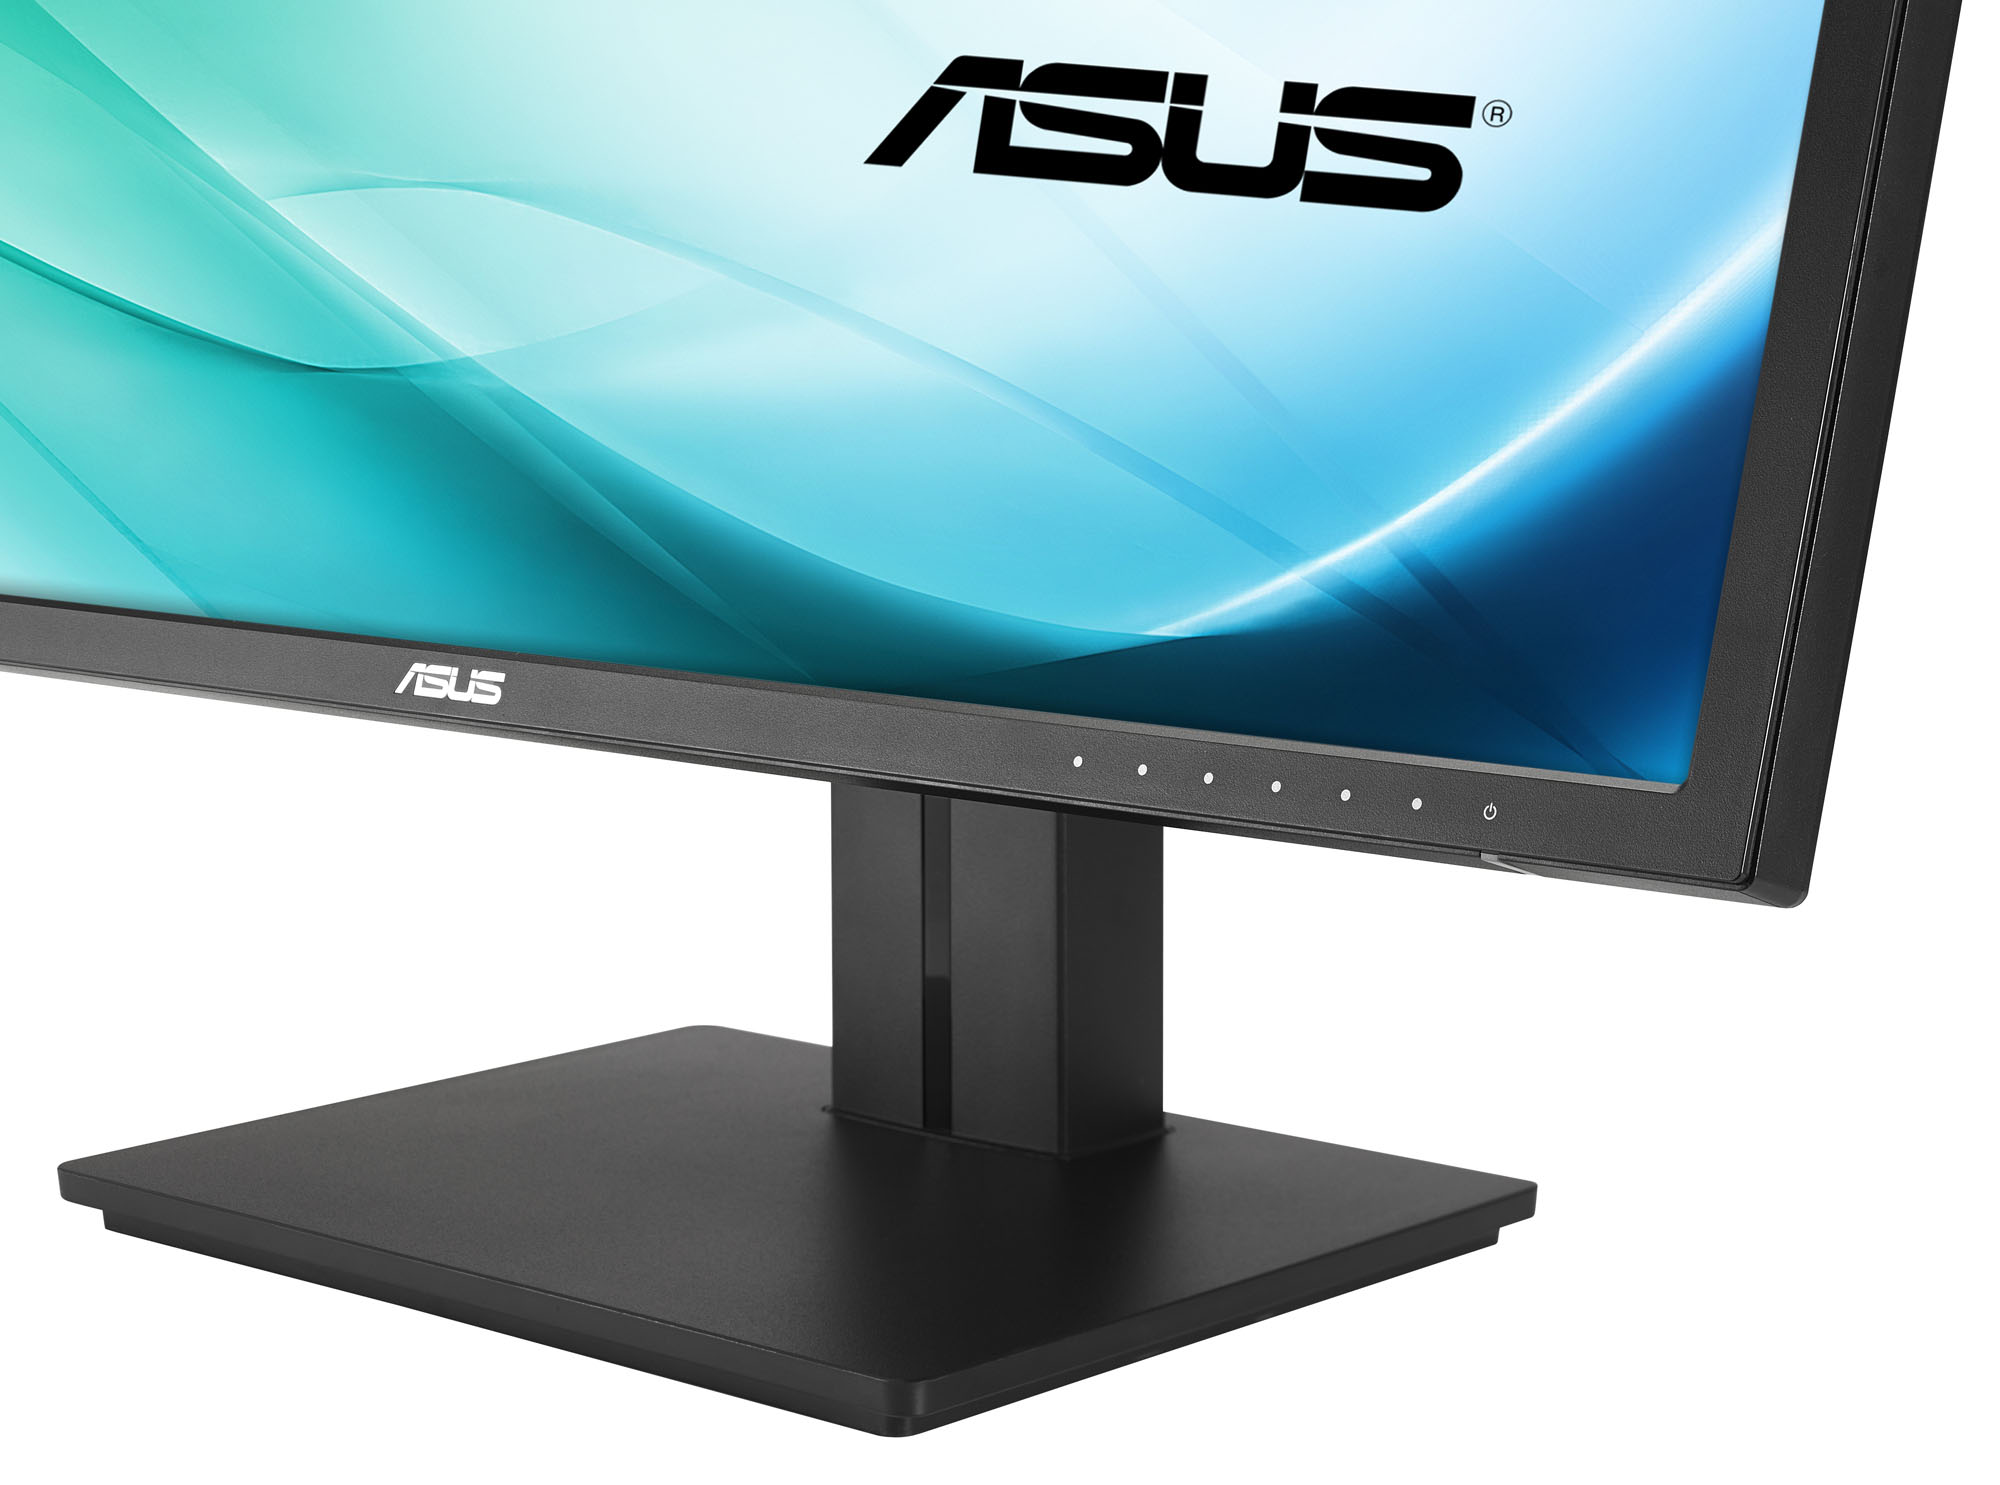 ASUS PB287Q 28-inch 4K 60Hz Monitor Aimed At Gamers For $799 - Legit ReviewsExtensive ...